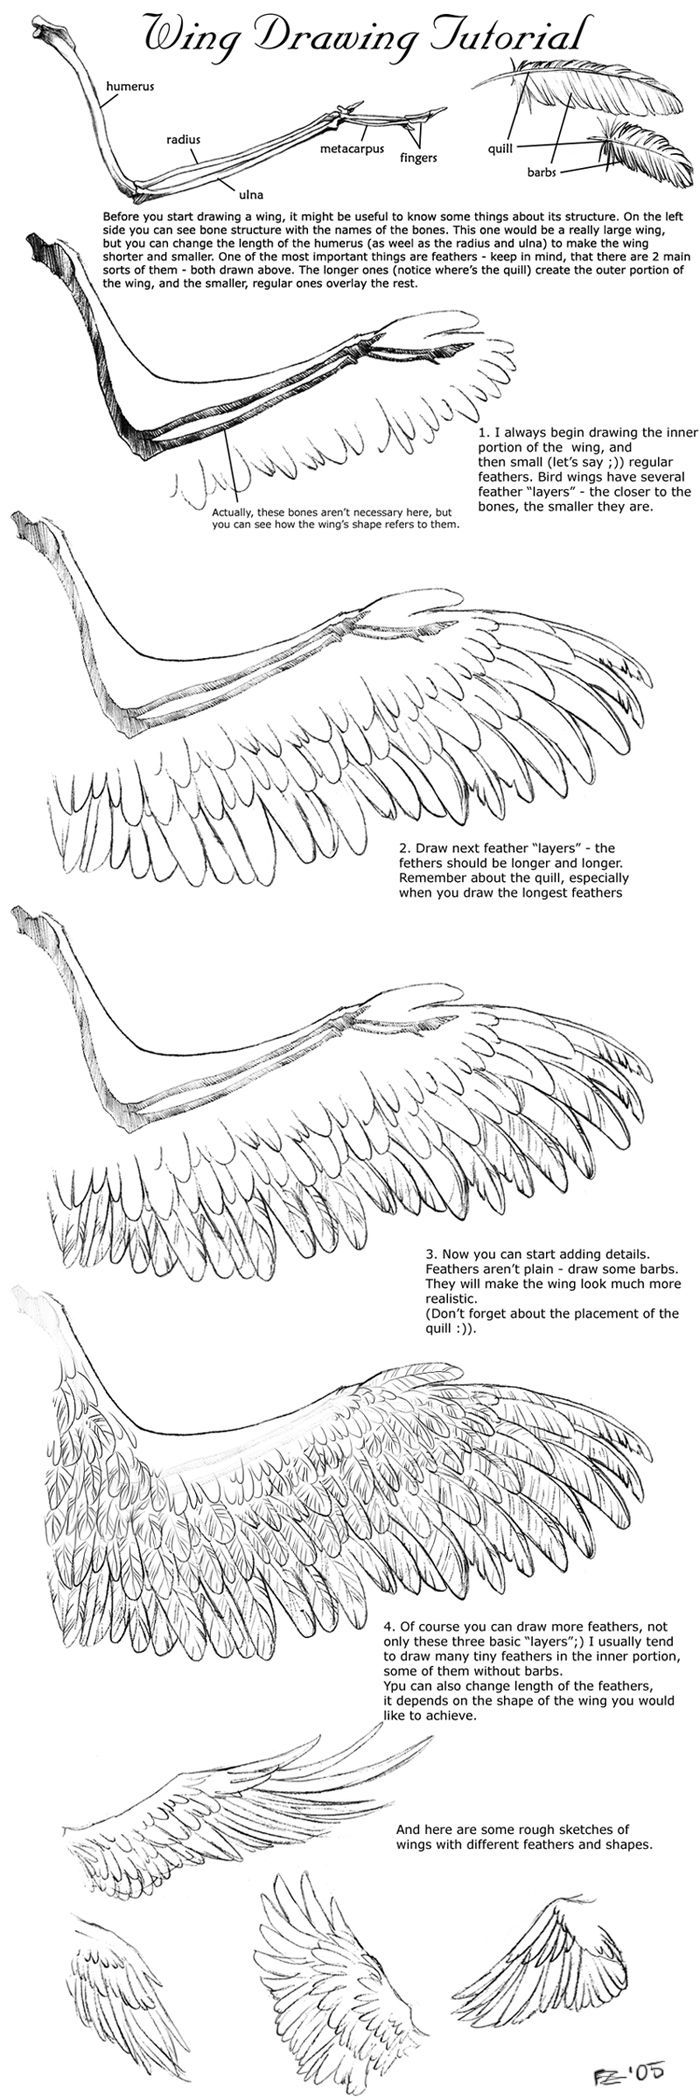 Tutorial: Wing Drawing by =Sheil repinned by www.BlickeDeeler.de ✤ || CHARACTER DESIGN REFERENCES | Find more at https://www.facebook.com/CharacterDesignReferences if you're looking for: #line #art #character #design #model #sheet #illustration #expressions #best #concept #animation #drawing #archive #library #reference #anatomy #traditional #draw #development #artist #pose #settei #gestures #how #to #tutorial #conceptart #modelsheet #cartoon @Rachel Oberst Design References